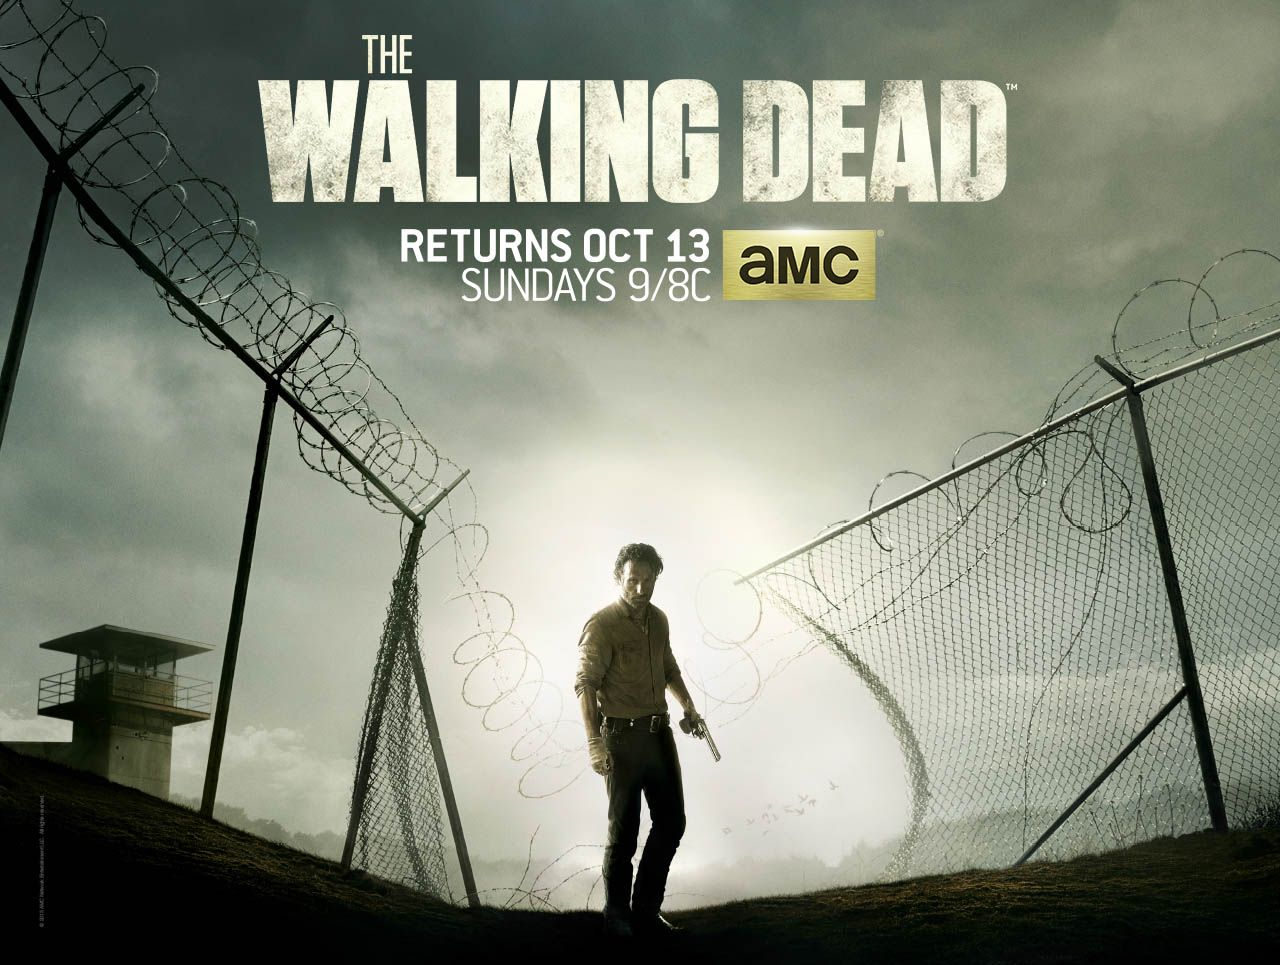 Final season of The Walking Dead promises big surprises : The series produced by Fox present the final chapter of her fourth season. The series has become